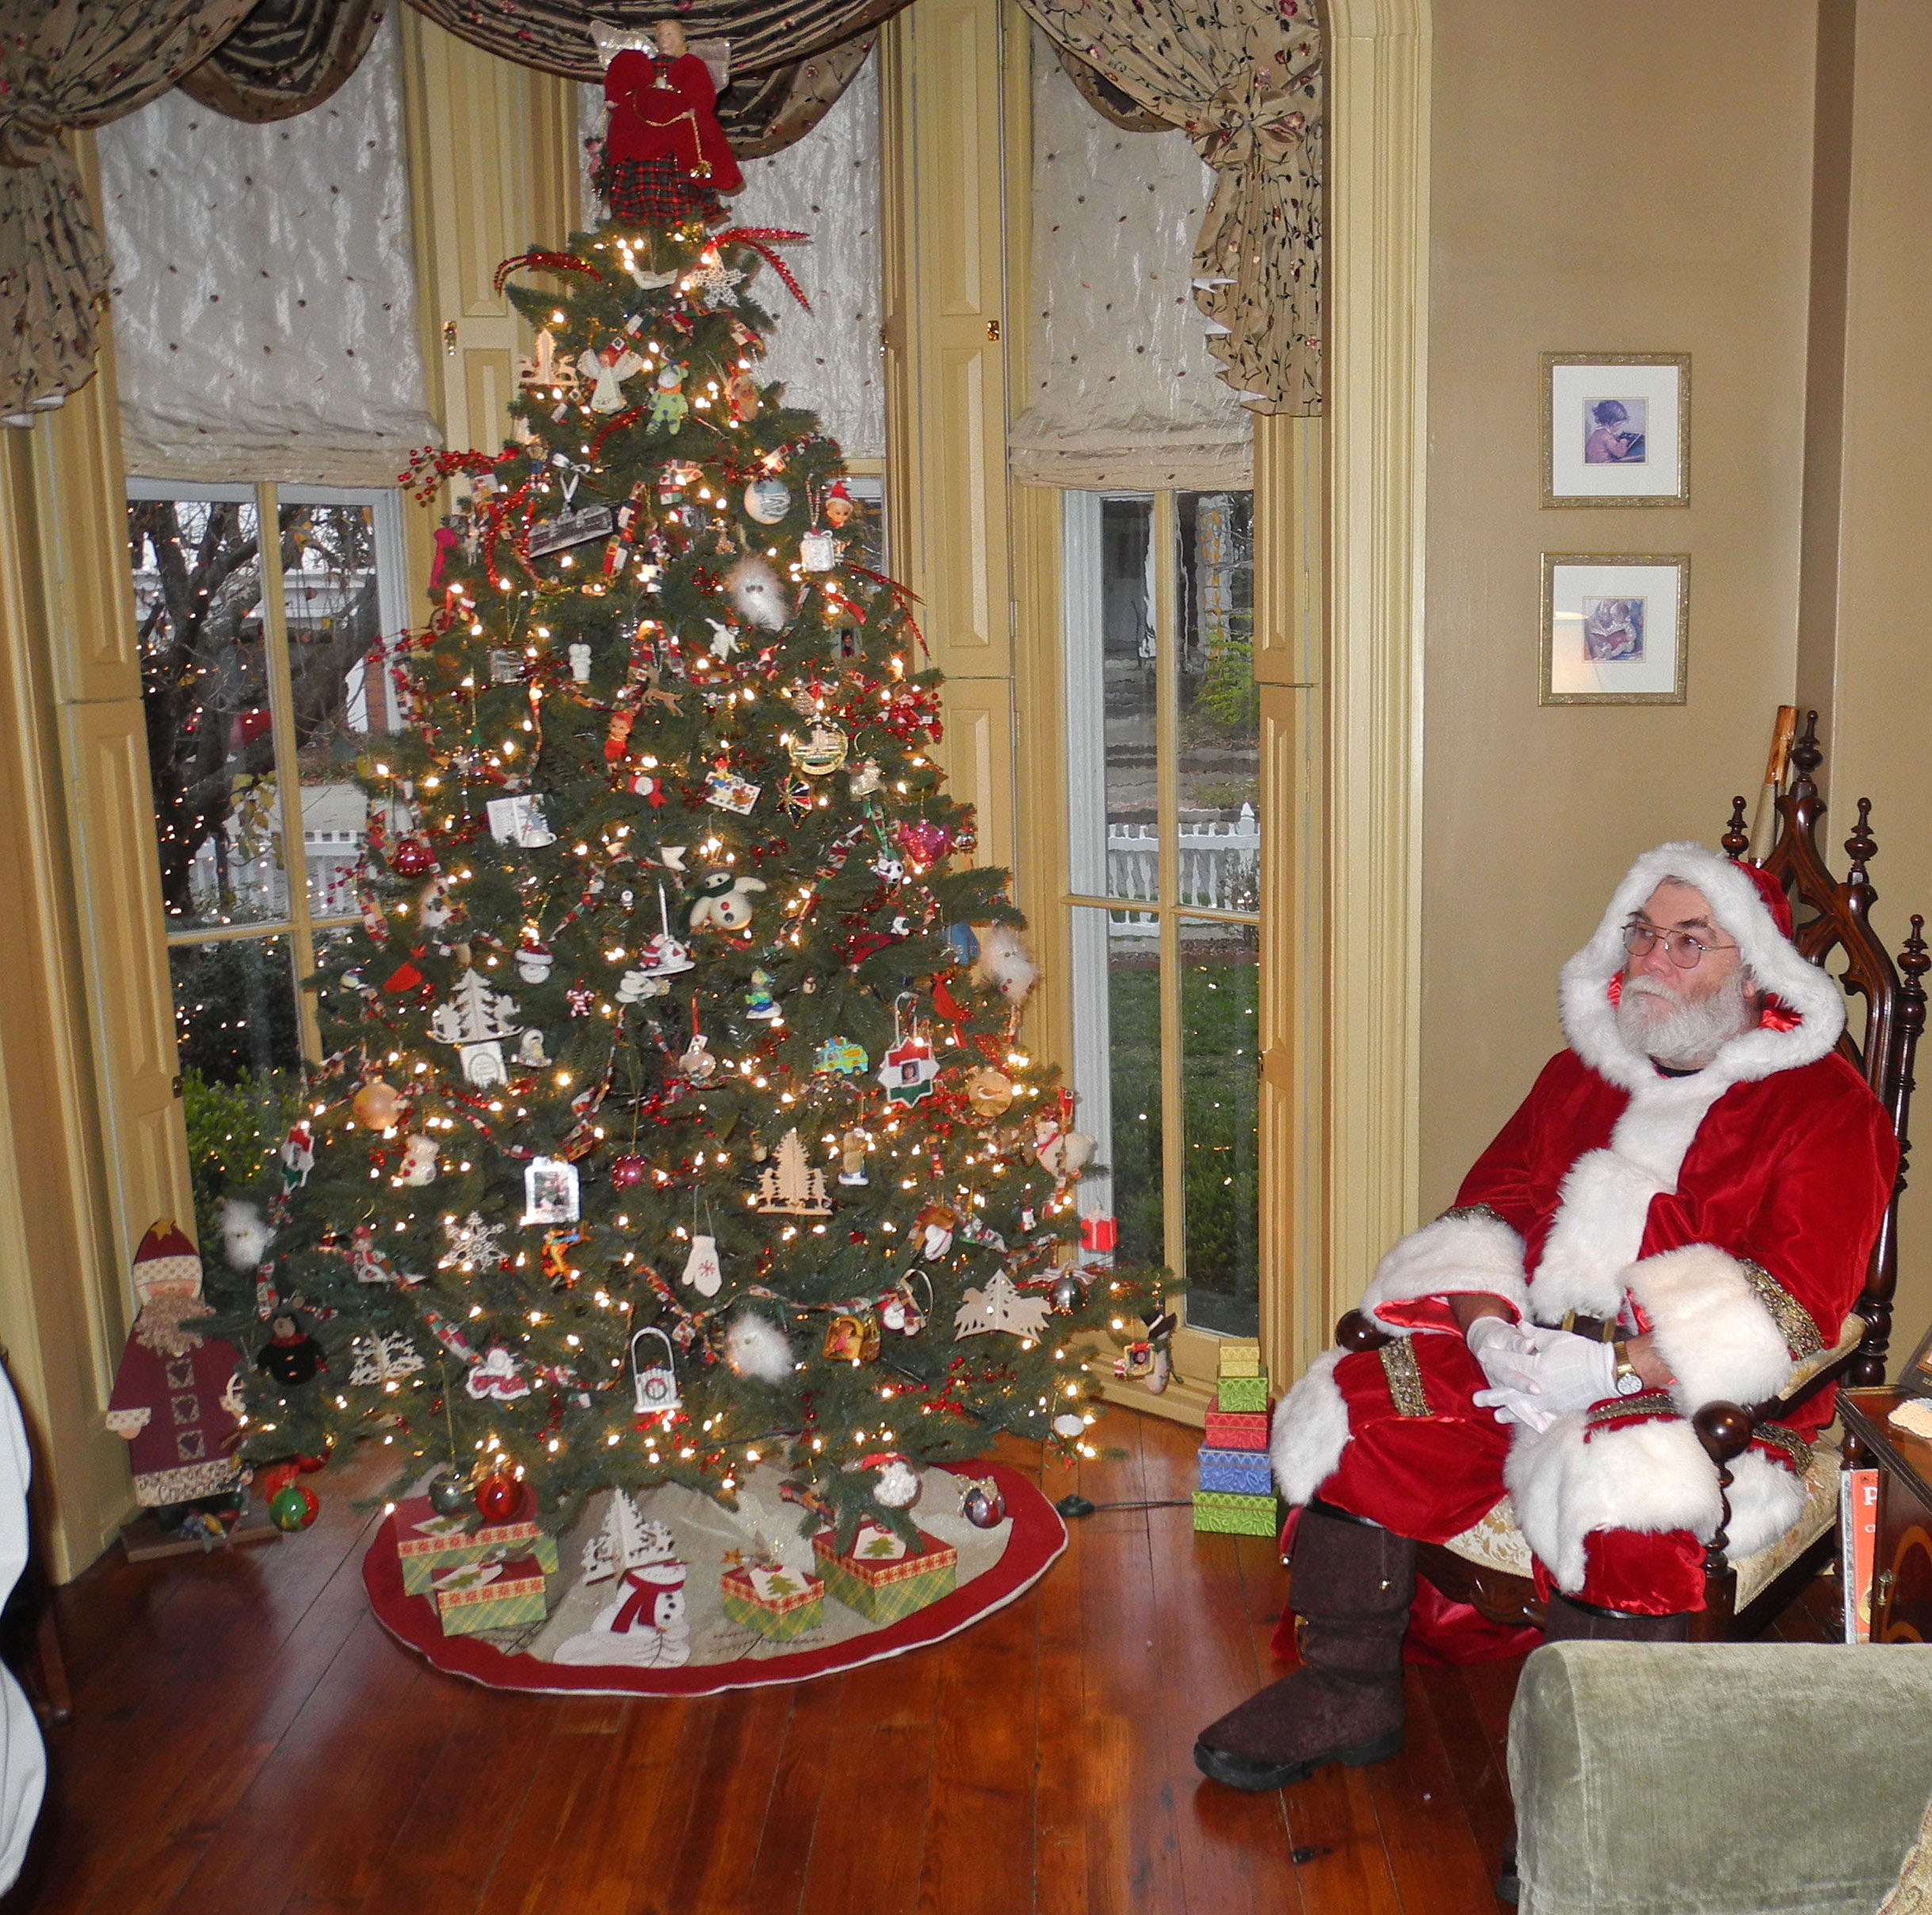 Victorian Christmas Tour In Parkersburg Showcases Old-time